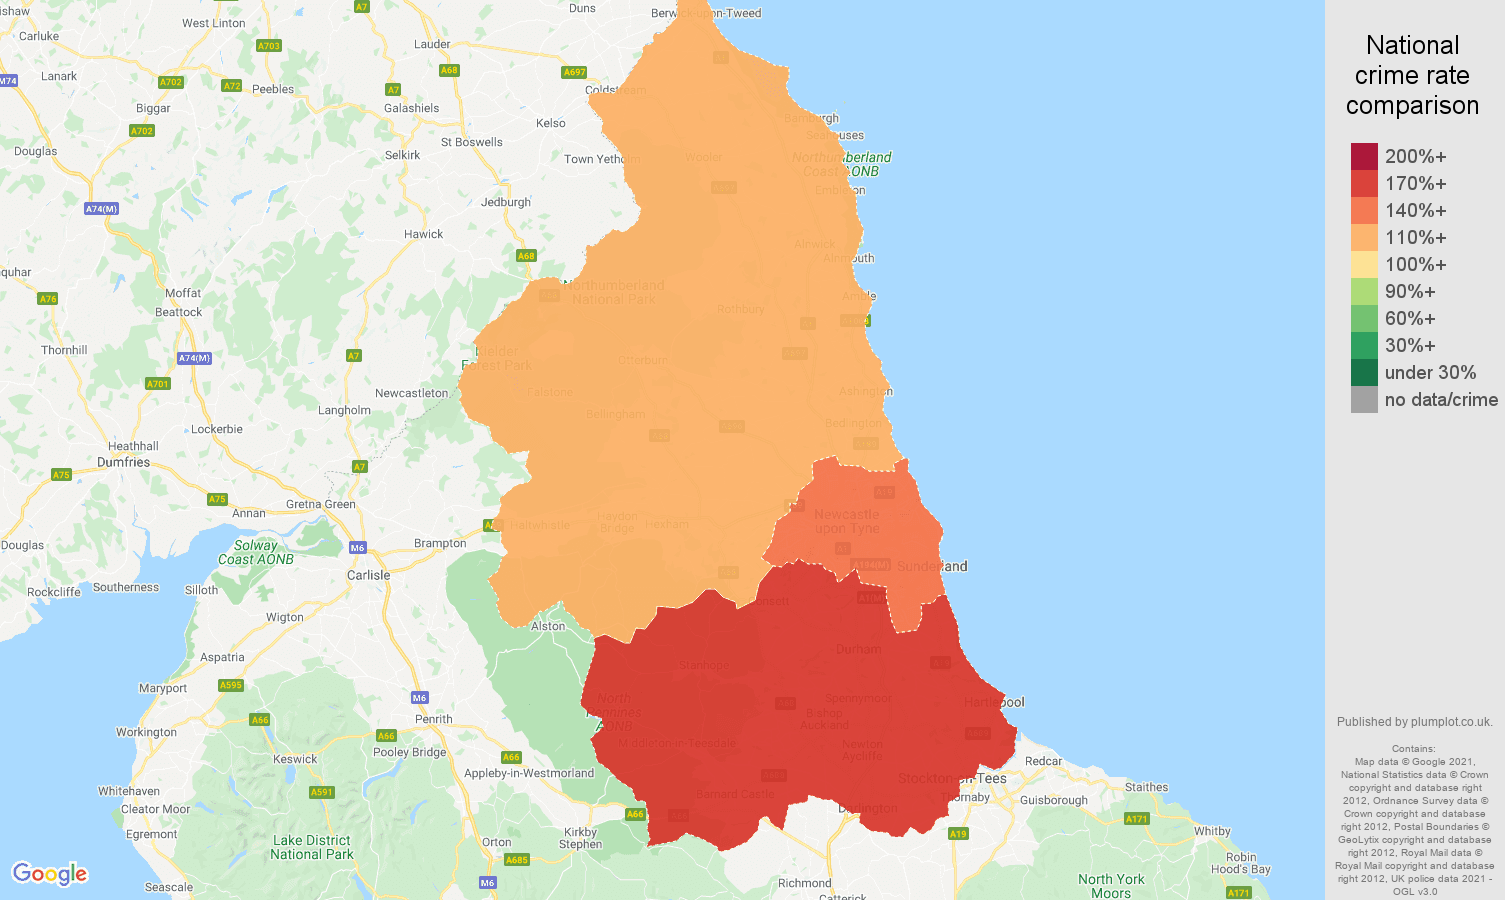 North East criminal damage and arson crime rate comparison map